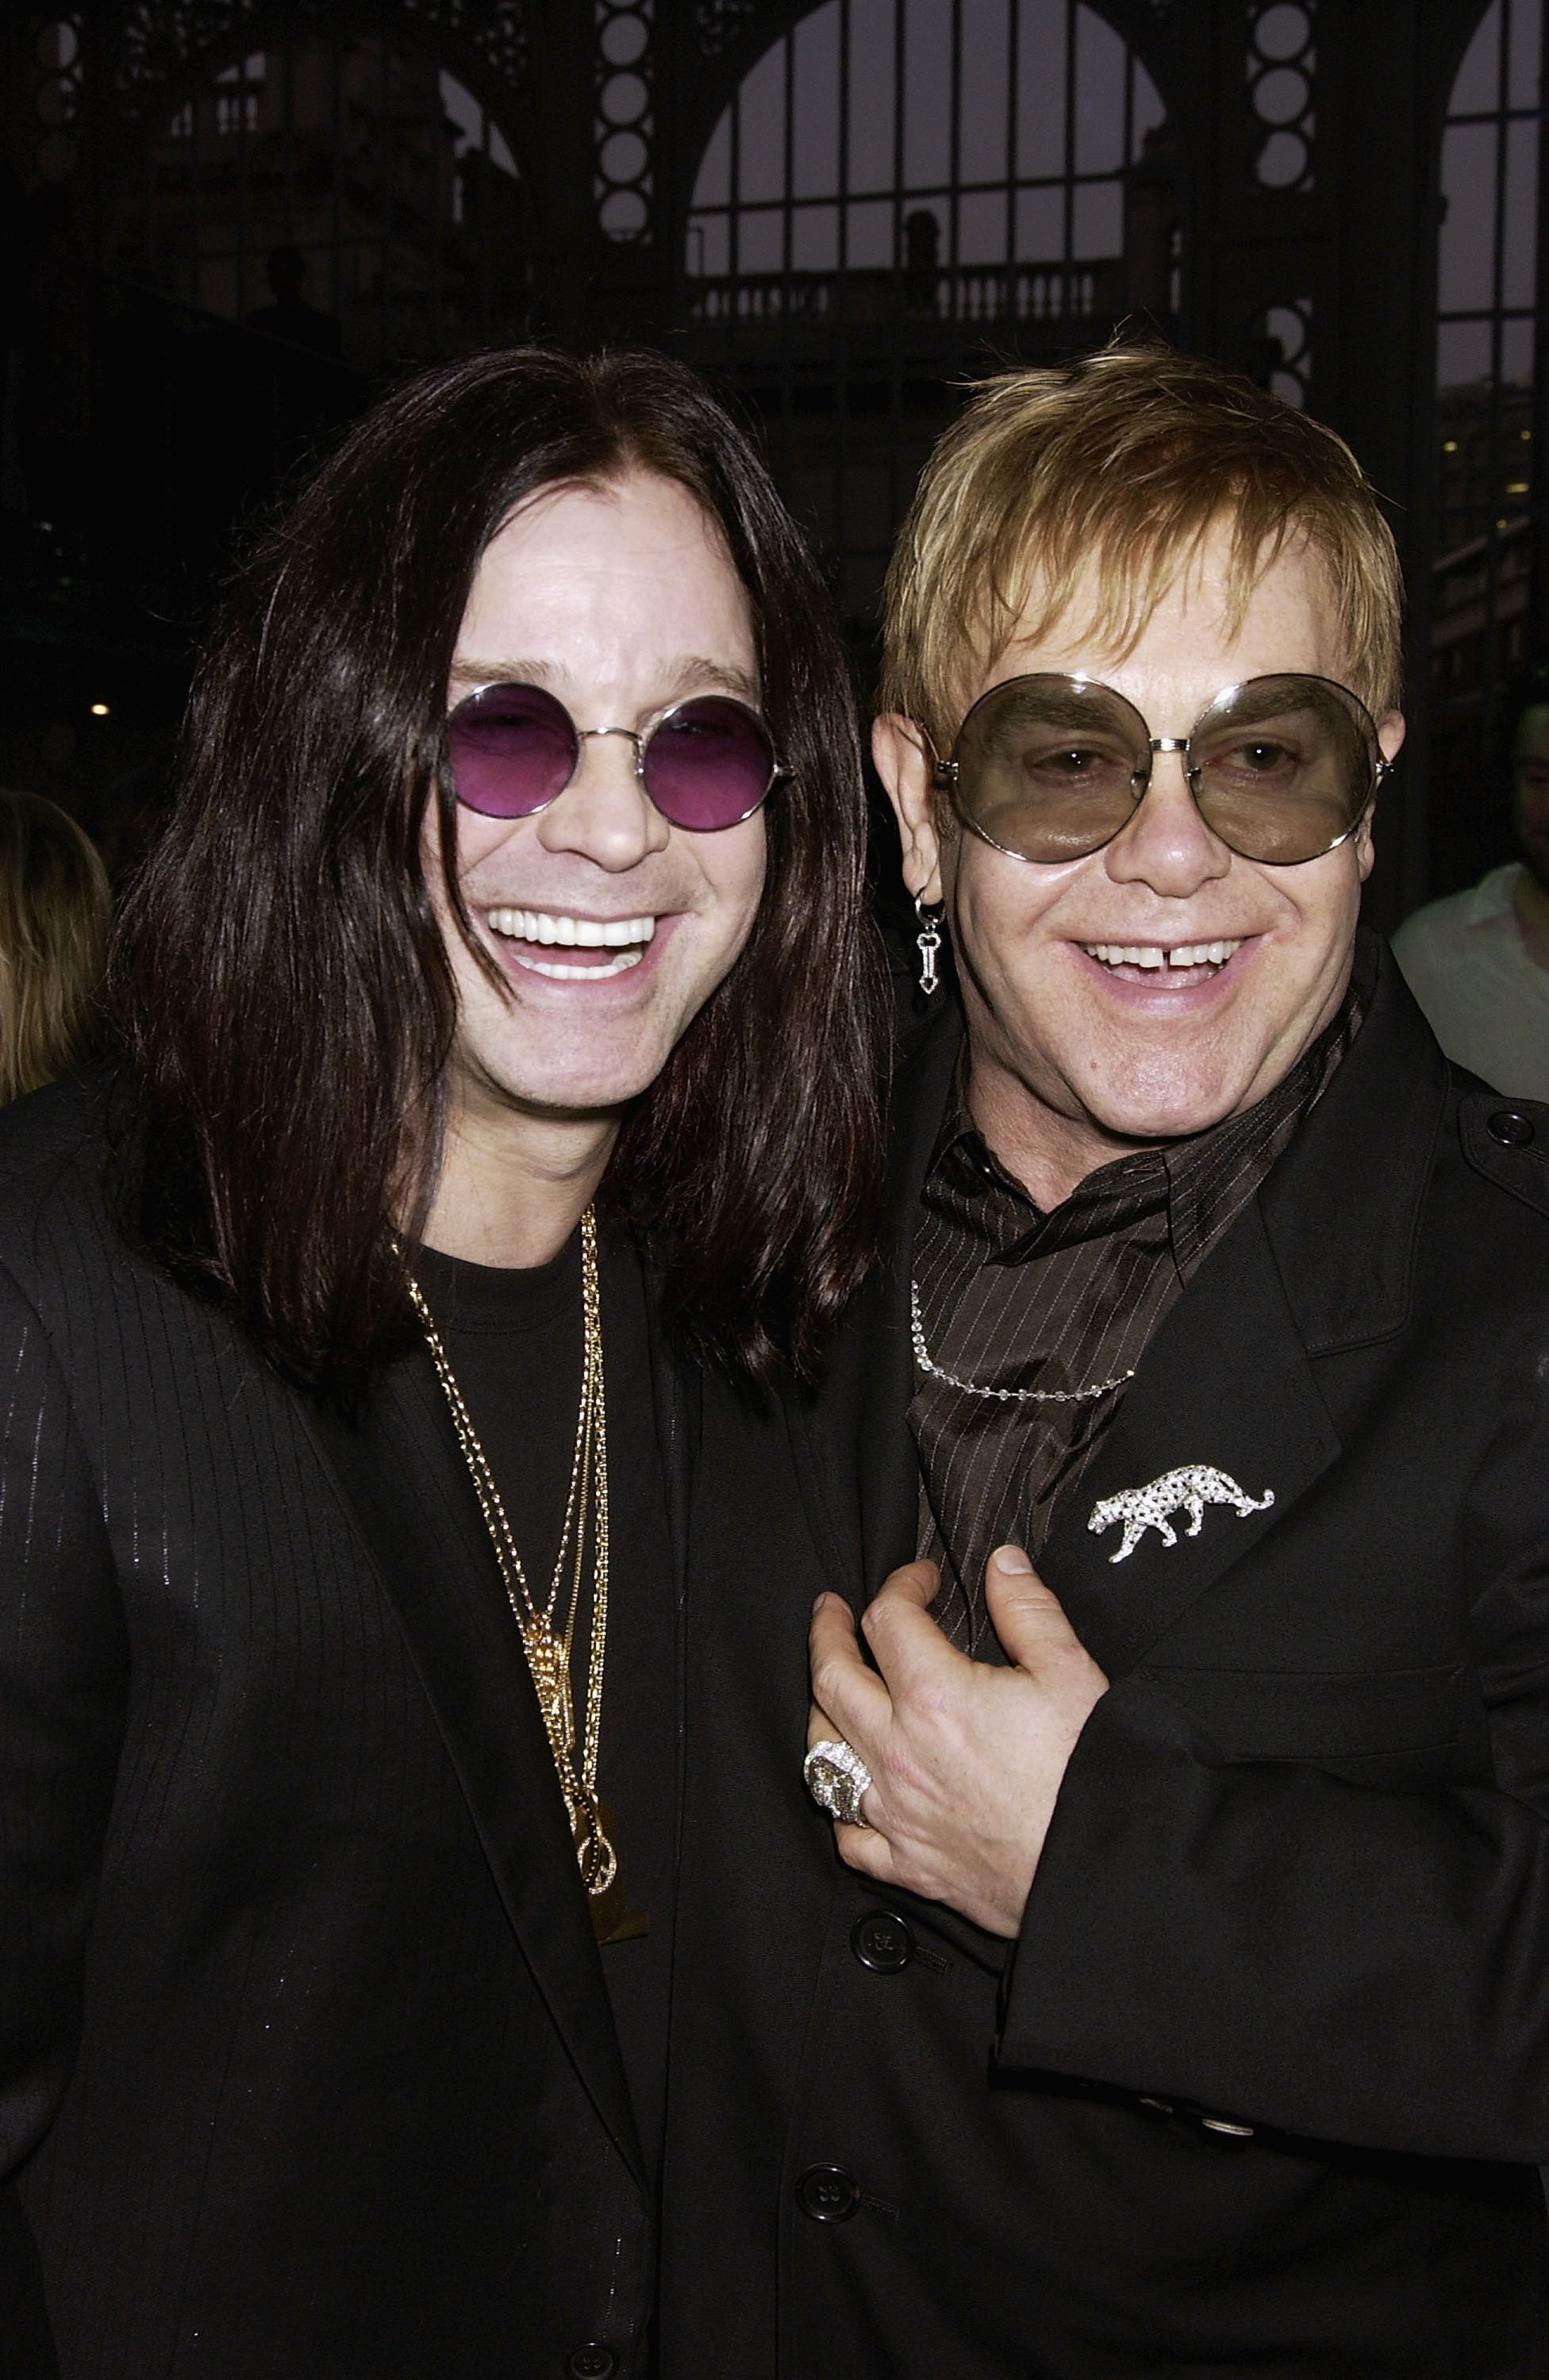 Image Credits: Getty Images / Elton John and Ozzy Osbourne smile for a photograph together.